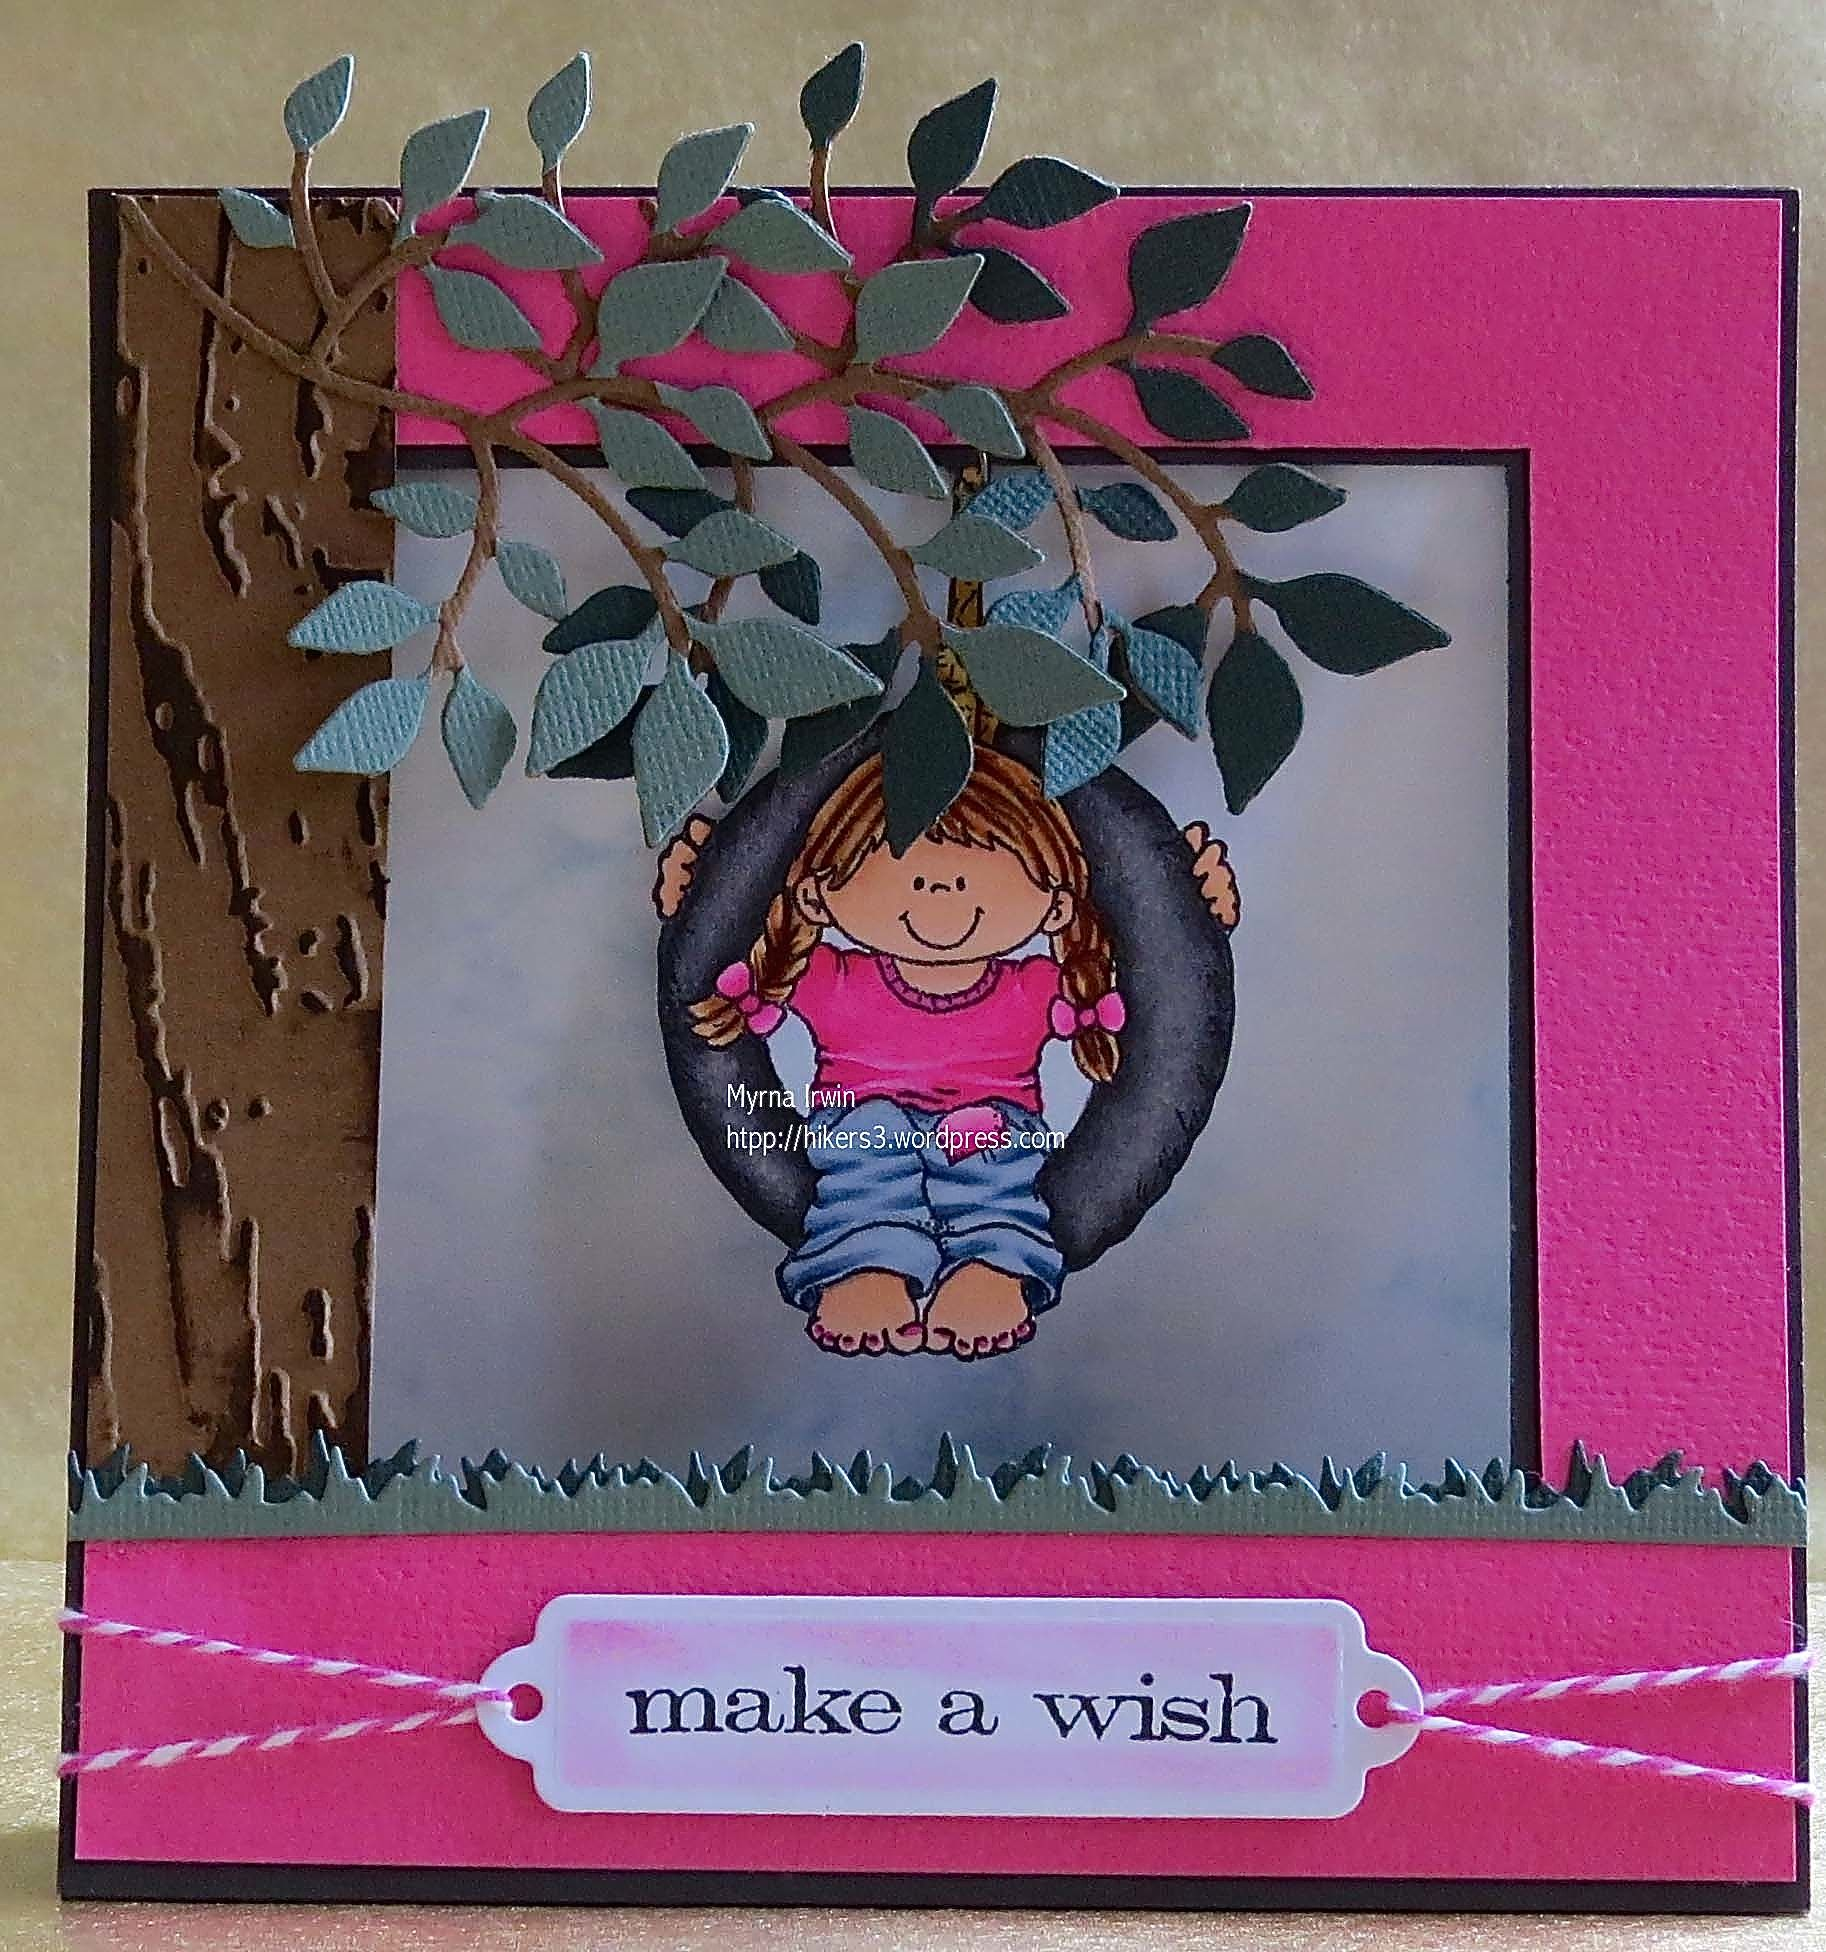 Madyson's Birthday card Swinging Shannon - High Hopes stamp http://hikers3.wordpress.com